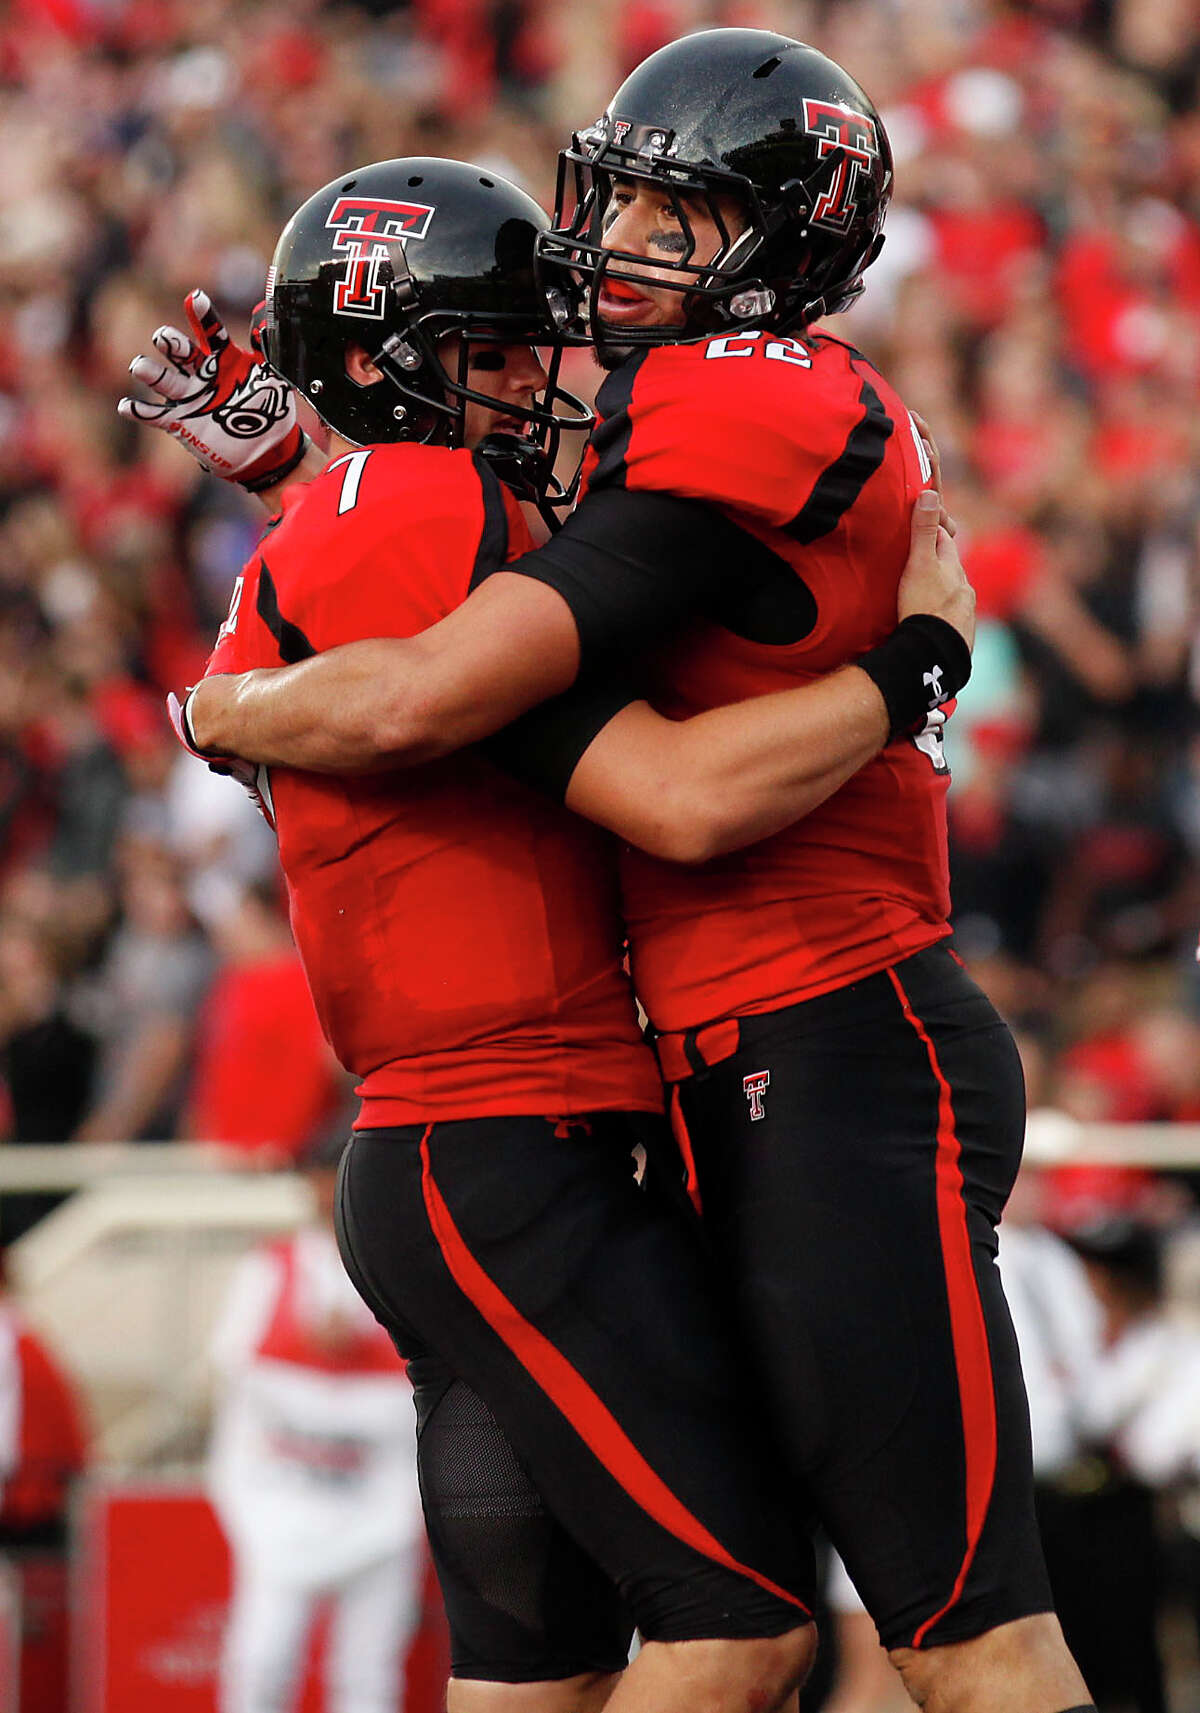 Texas Tech's Seth Doege (7) and Jace Amaro (22) celebrate a touchdown against New Mexico during an NCAA college football game in Lubbock, Texas, Saturday, Sept. 15, 2012. (AP Photo/Lubbock Avalanche-Journal, Stephen Spillman) Texas Tech